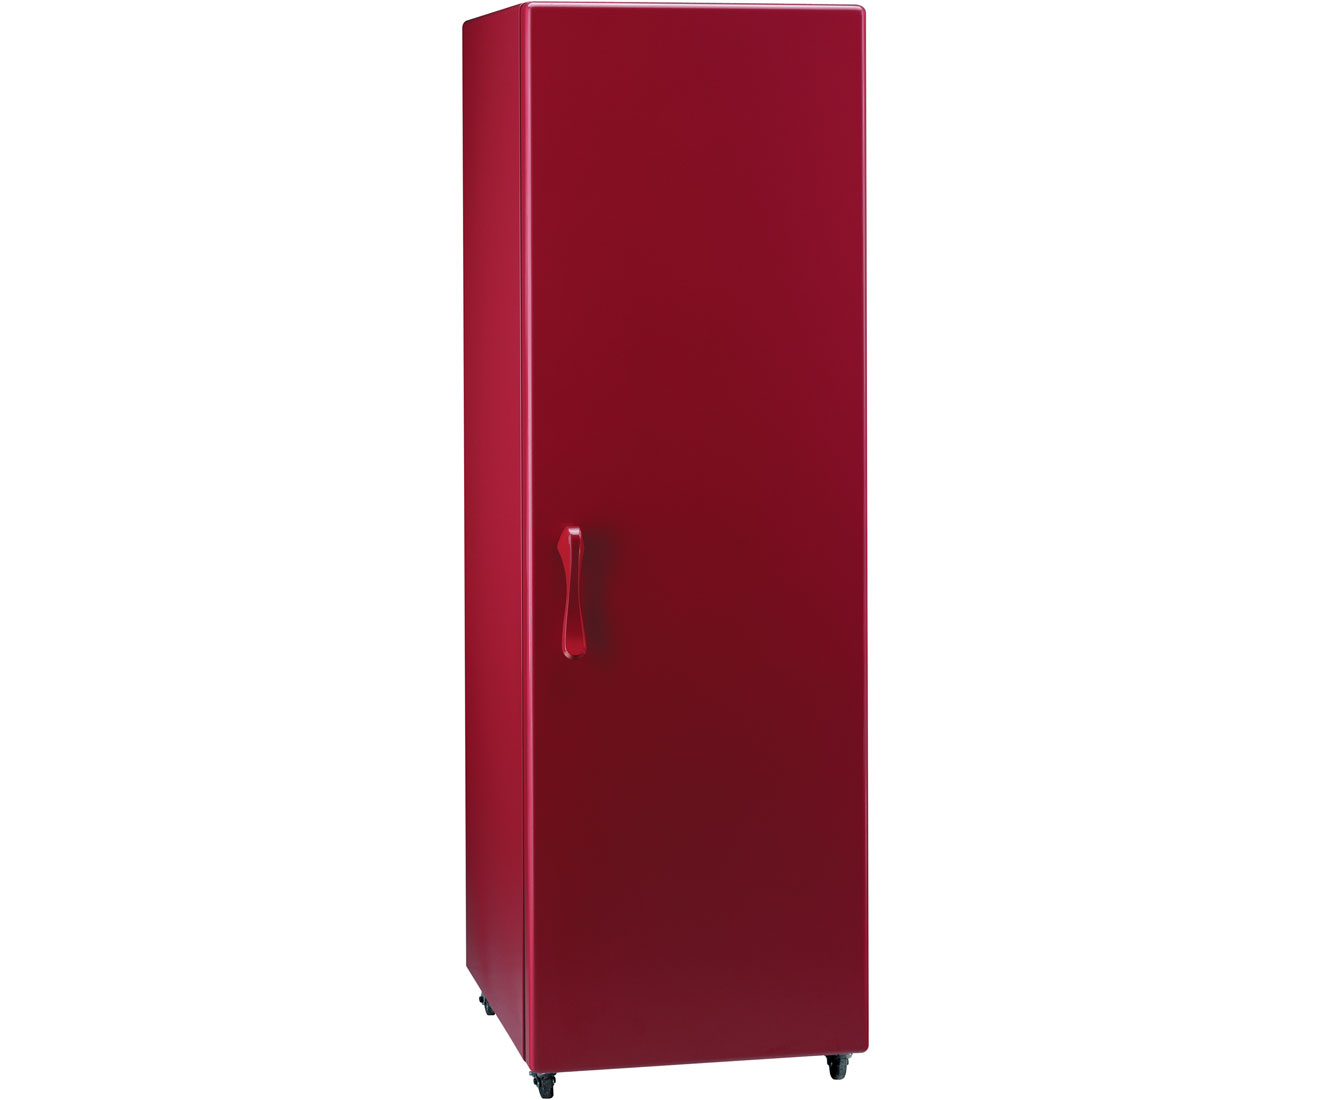 Online Fridge Cheap Red Fridge Freezer Prices Online